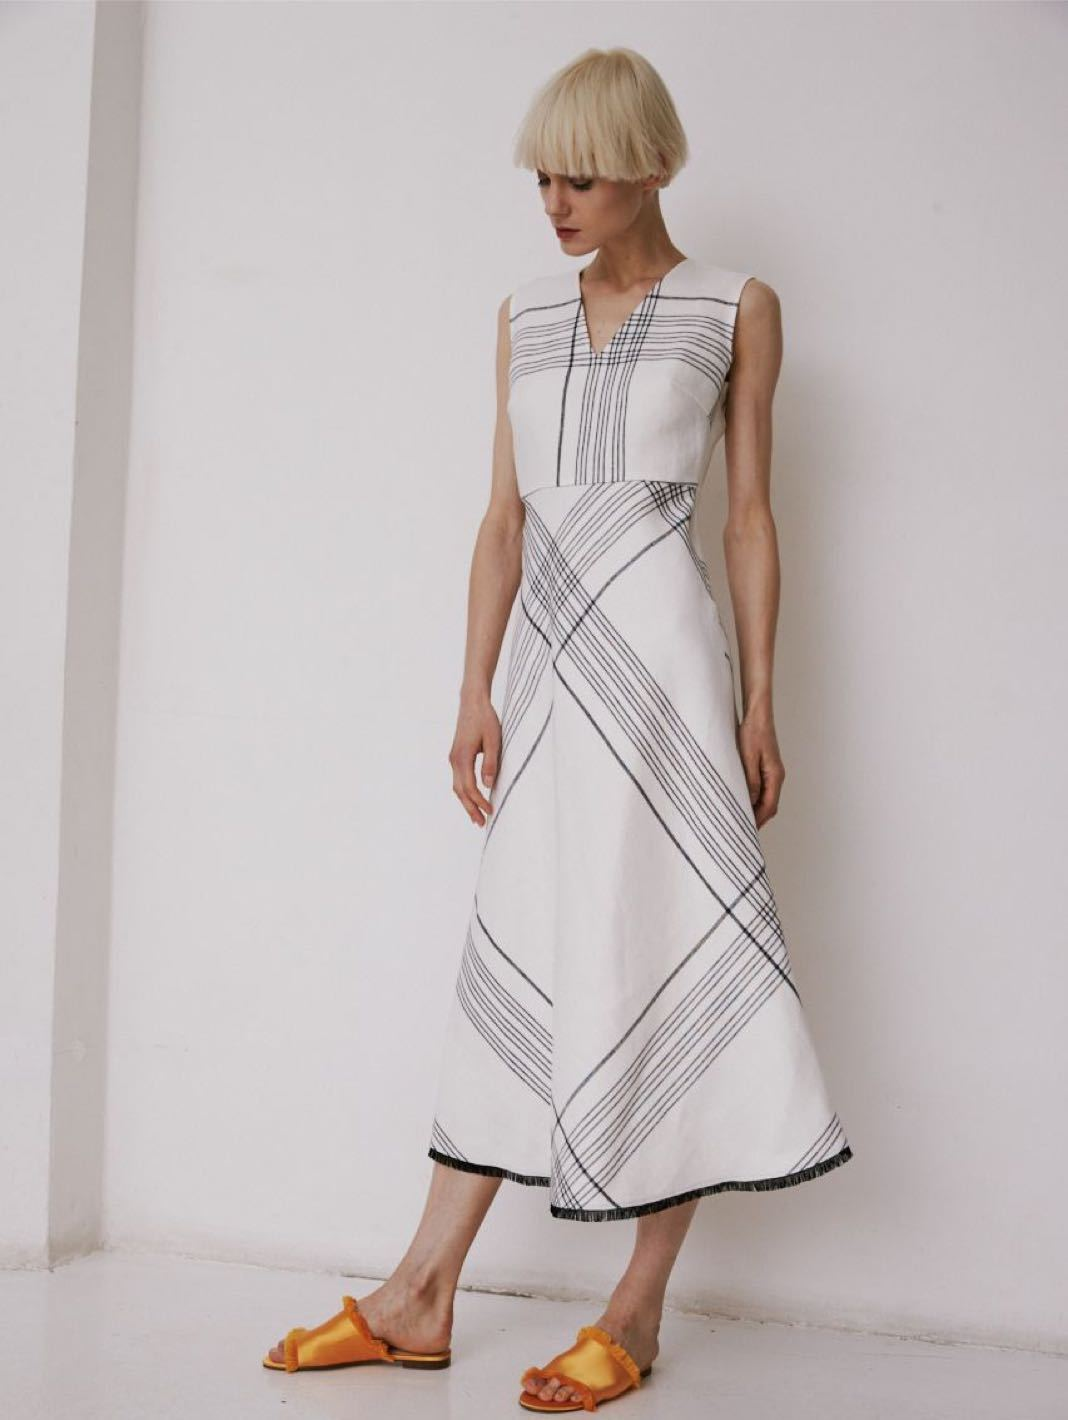 Checkered Linen Dress - The Bobby Boga